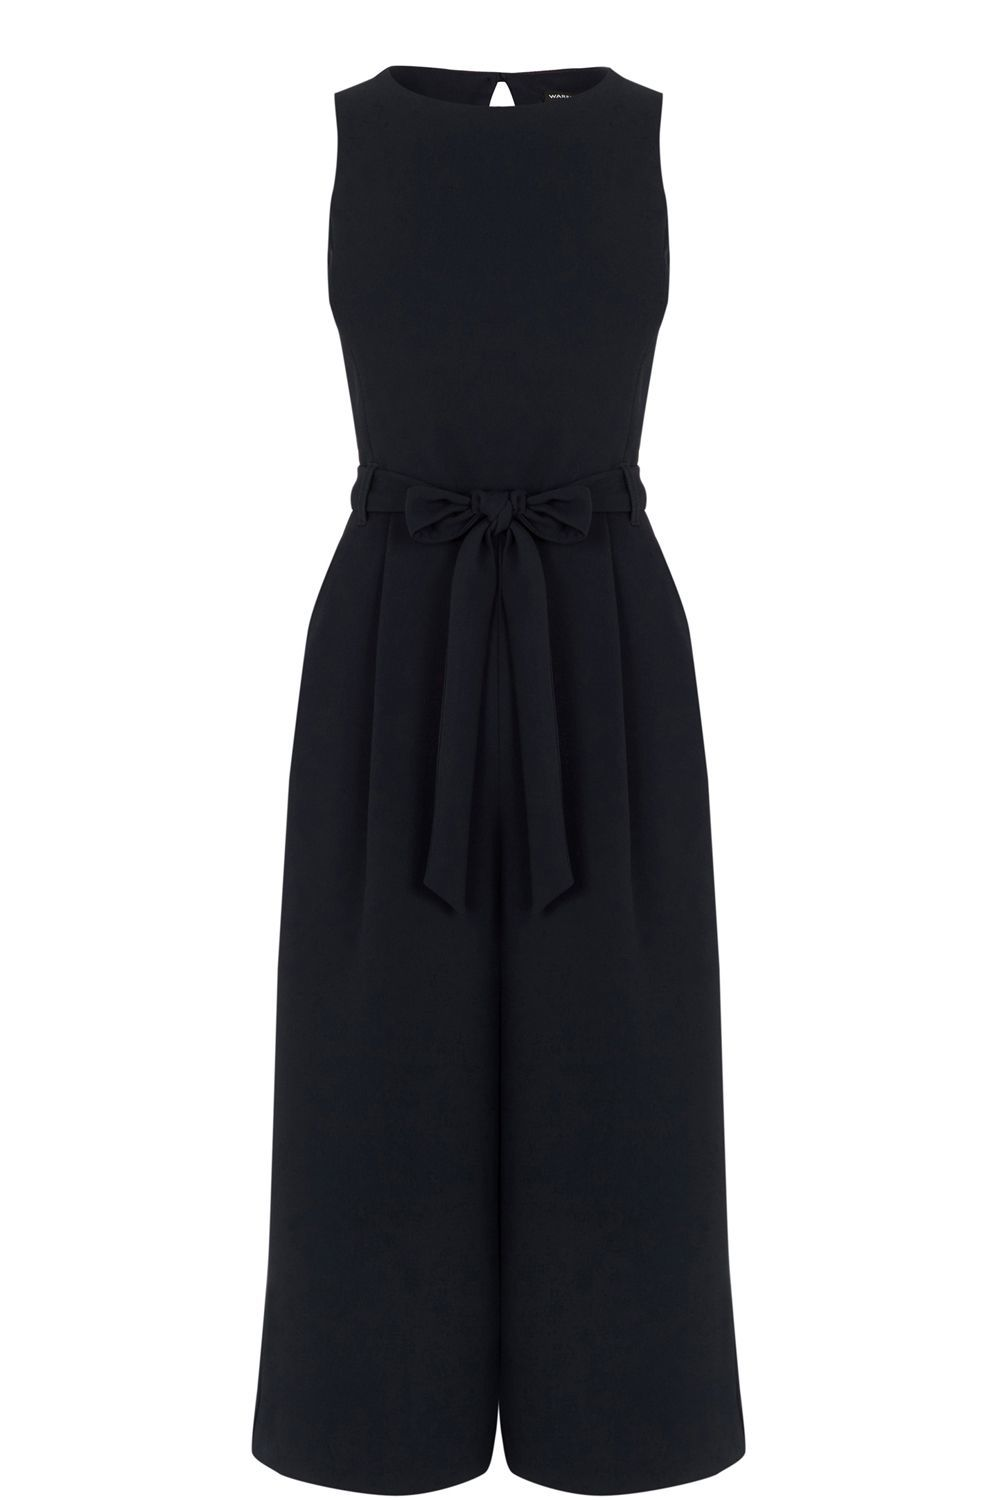 Culotte Jumpsuit, Navy - fit: tailored/fitted; pattern: plain; sleeve style: sleeveless; waist detail: belted waist/tie at waist/drawstring; predominant colour: navy; occasions: evening; length: calf length; fibres: polyester/polyamide - stretch; neckline: crew; sleeve length: sleeveless; texture group: crepes; style: jumpsuit; pattern type: fabric; season: s/s 2016